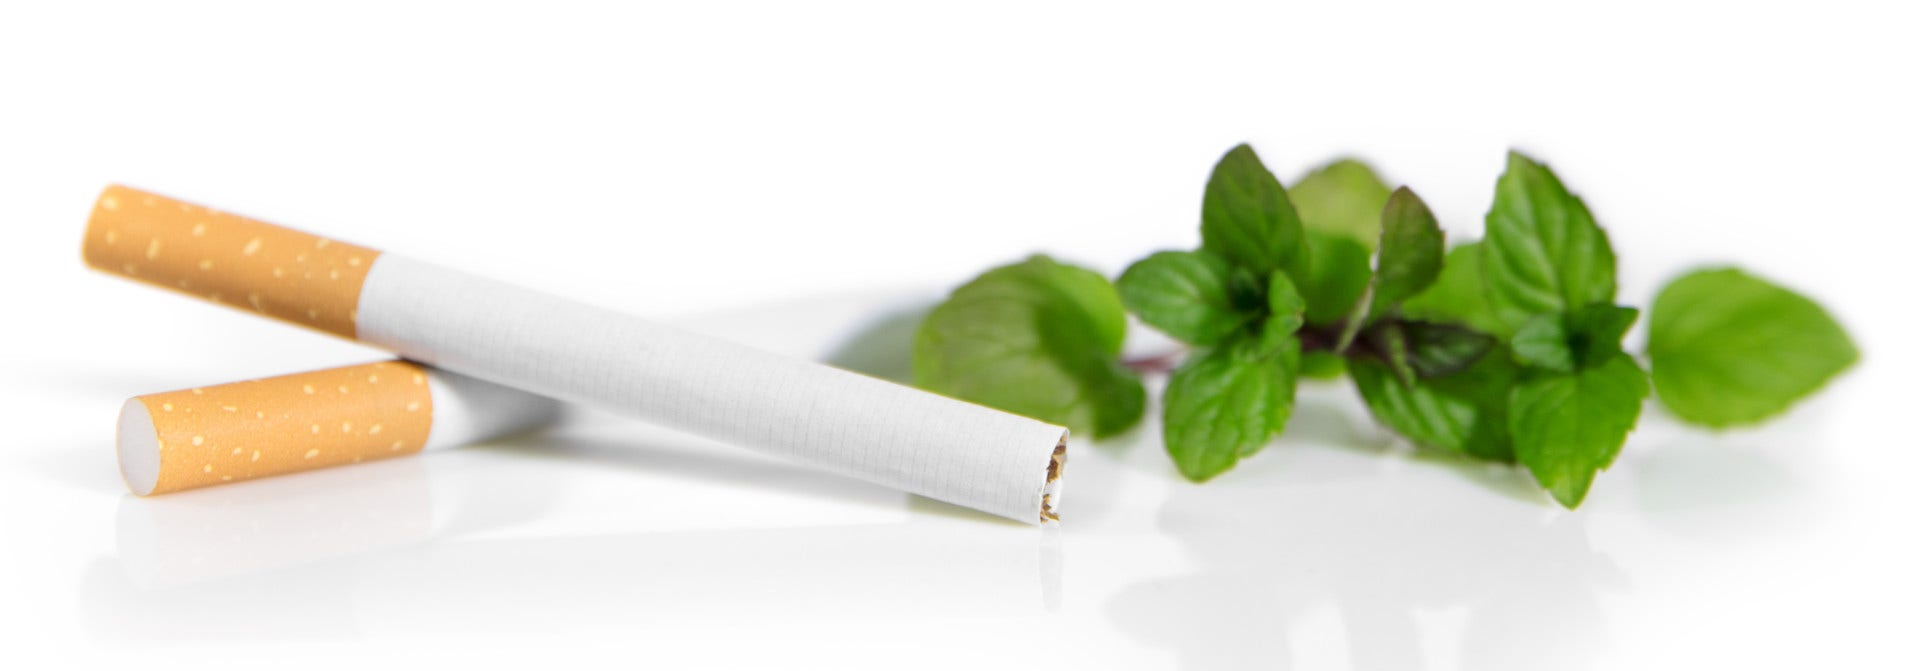 Menthol Cigarette Ban – Vaping Alternatives and Flavoured E-liquids